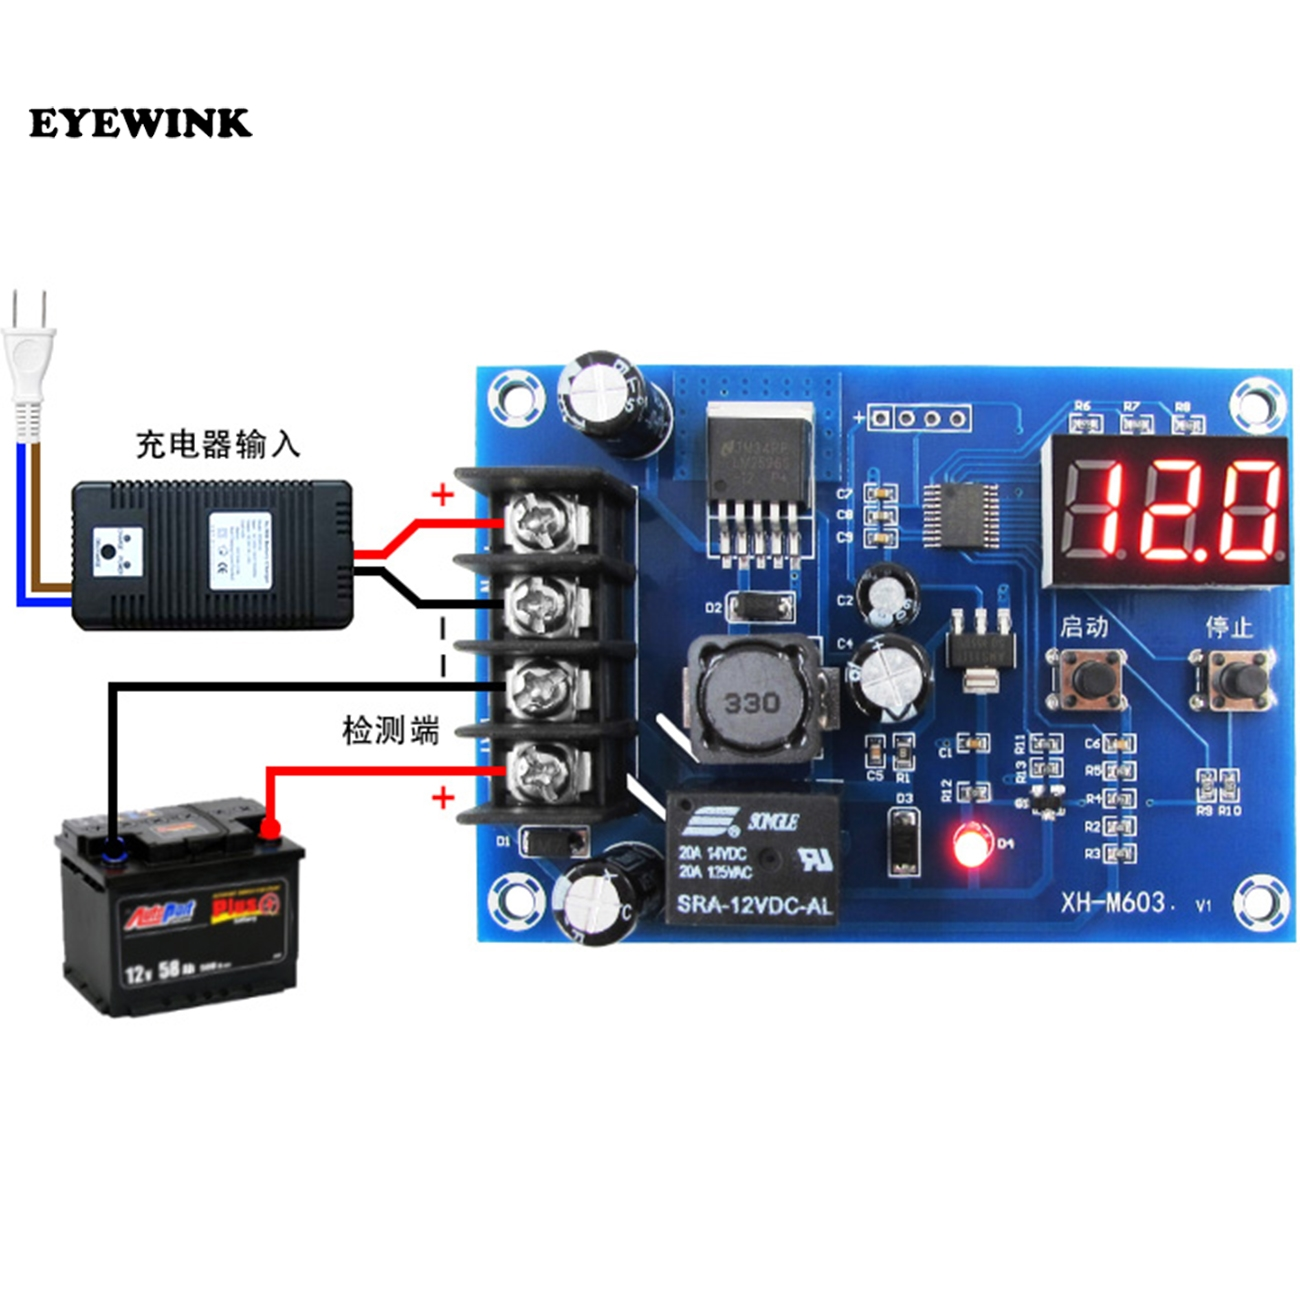 10pcs XH M603 Charging Control Module Digital LED Display Storage Lithium Battery Charger Control Switch Protection